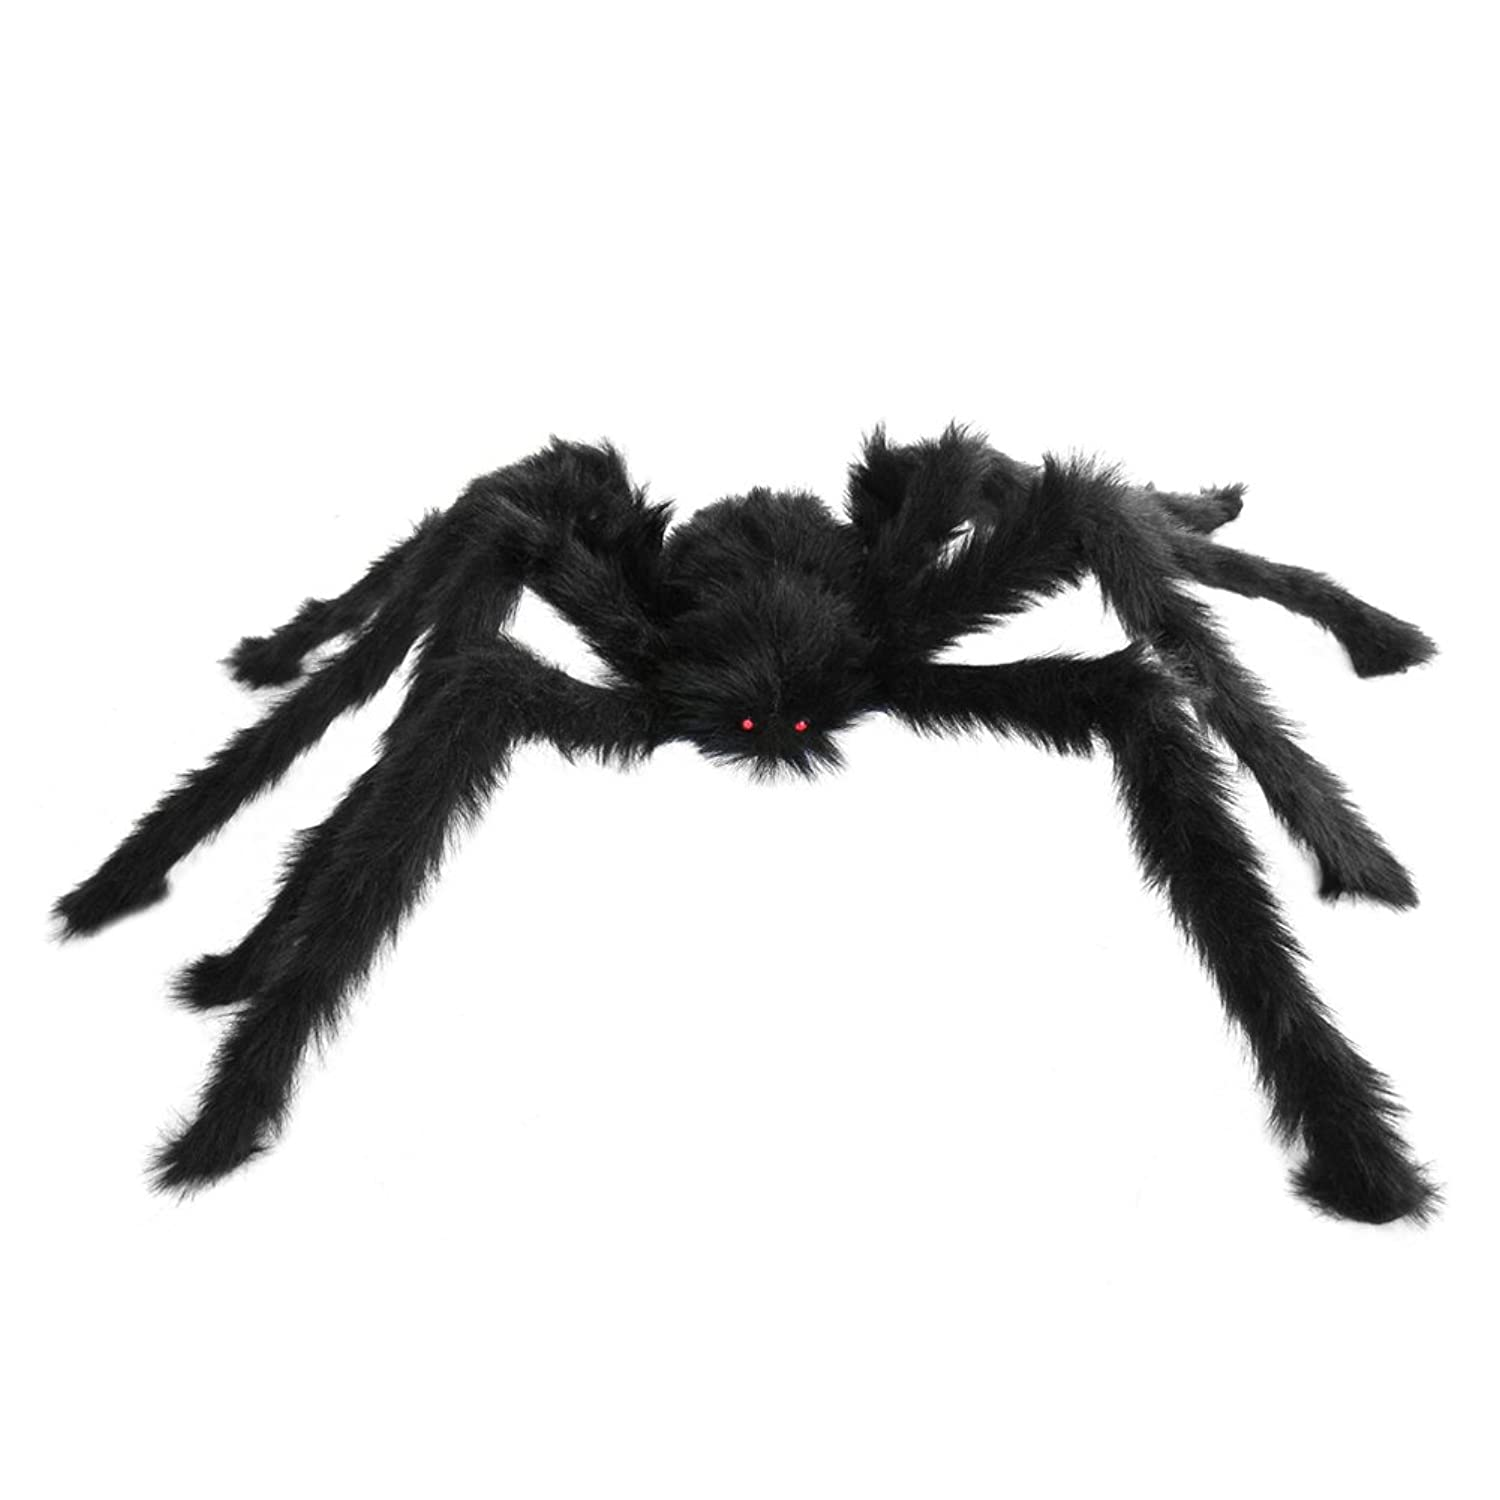 amazoncom large hairy poseable black spider halloween large spider decoration u0026 prop clothing